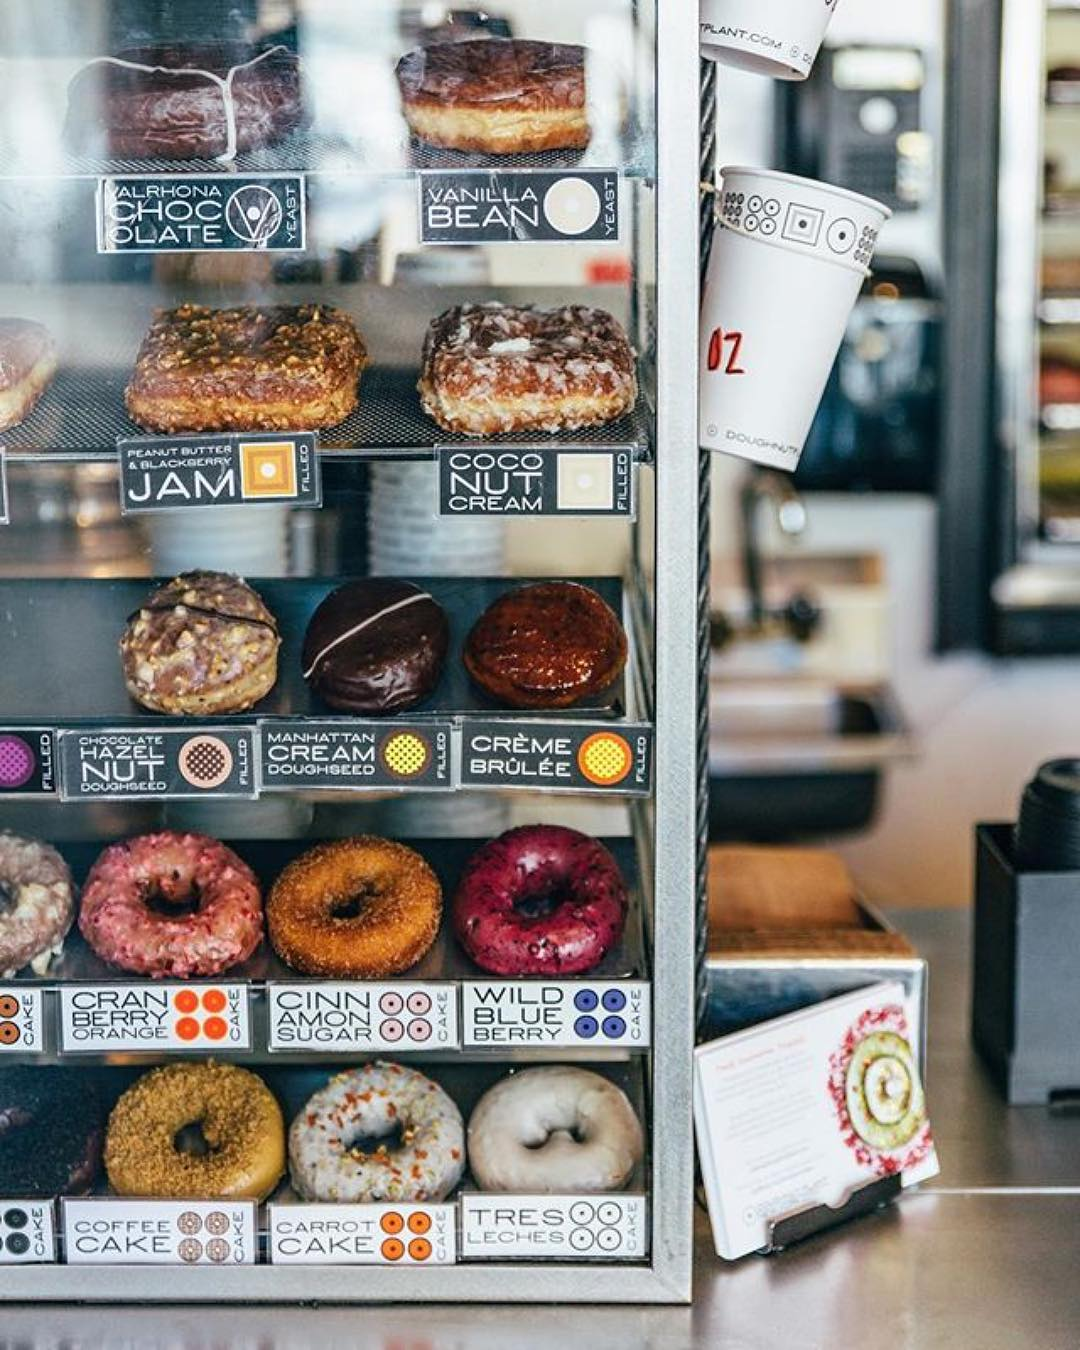 doughnut plant new york.jpg